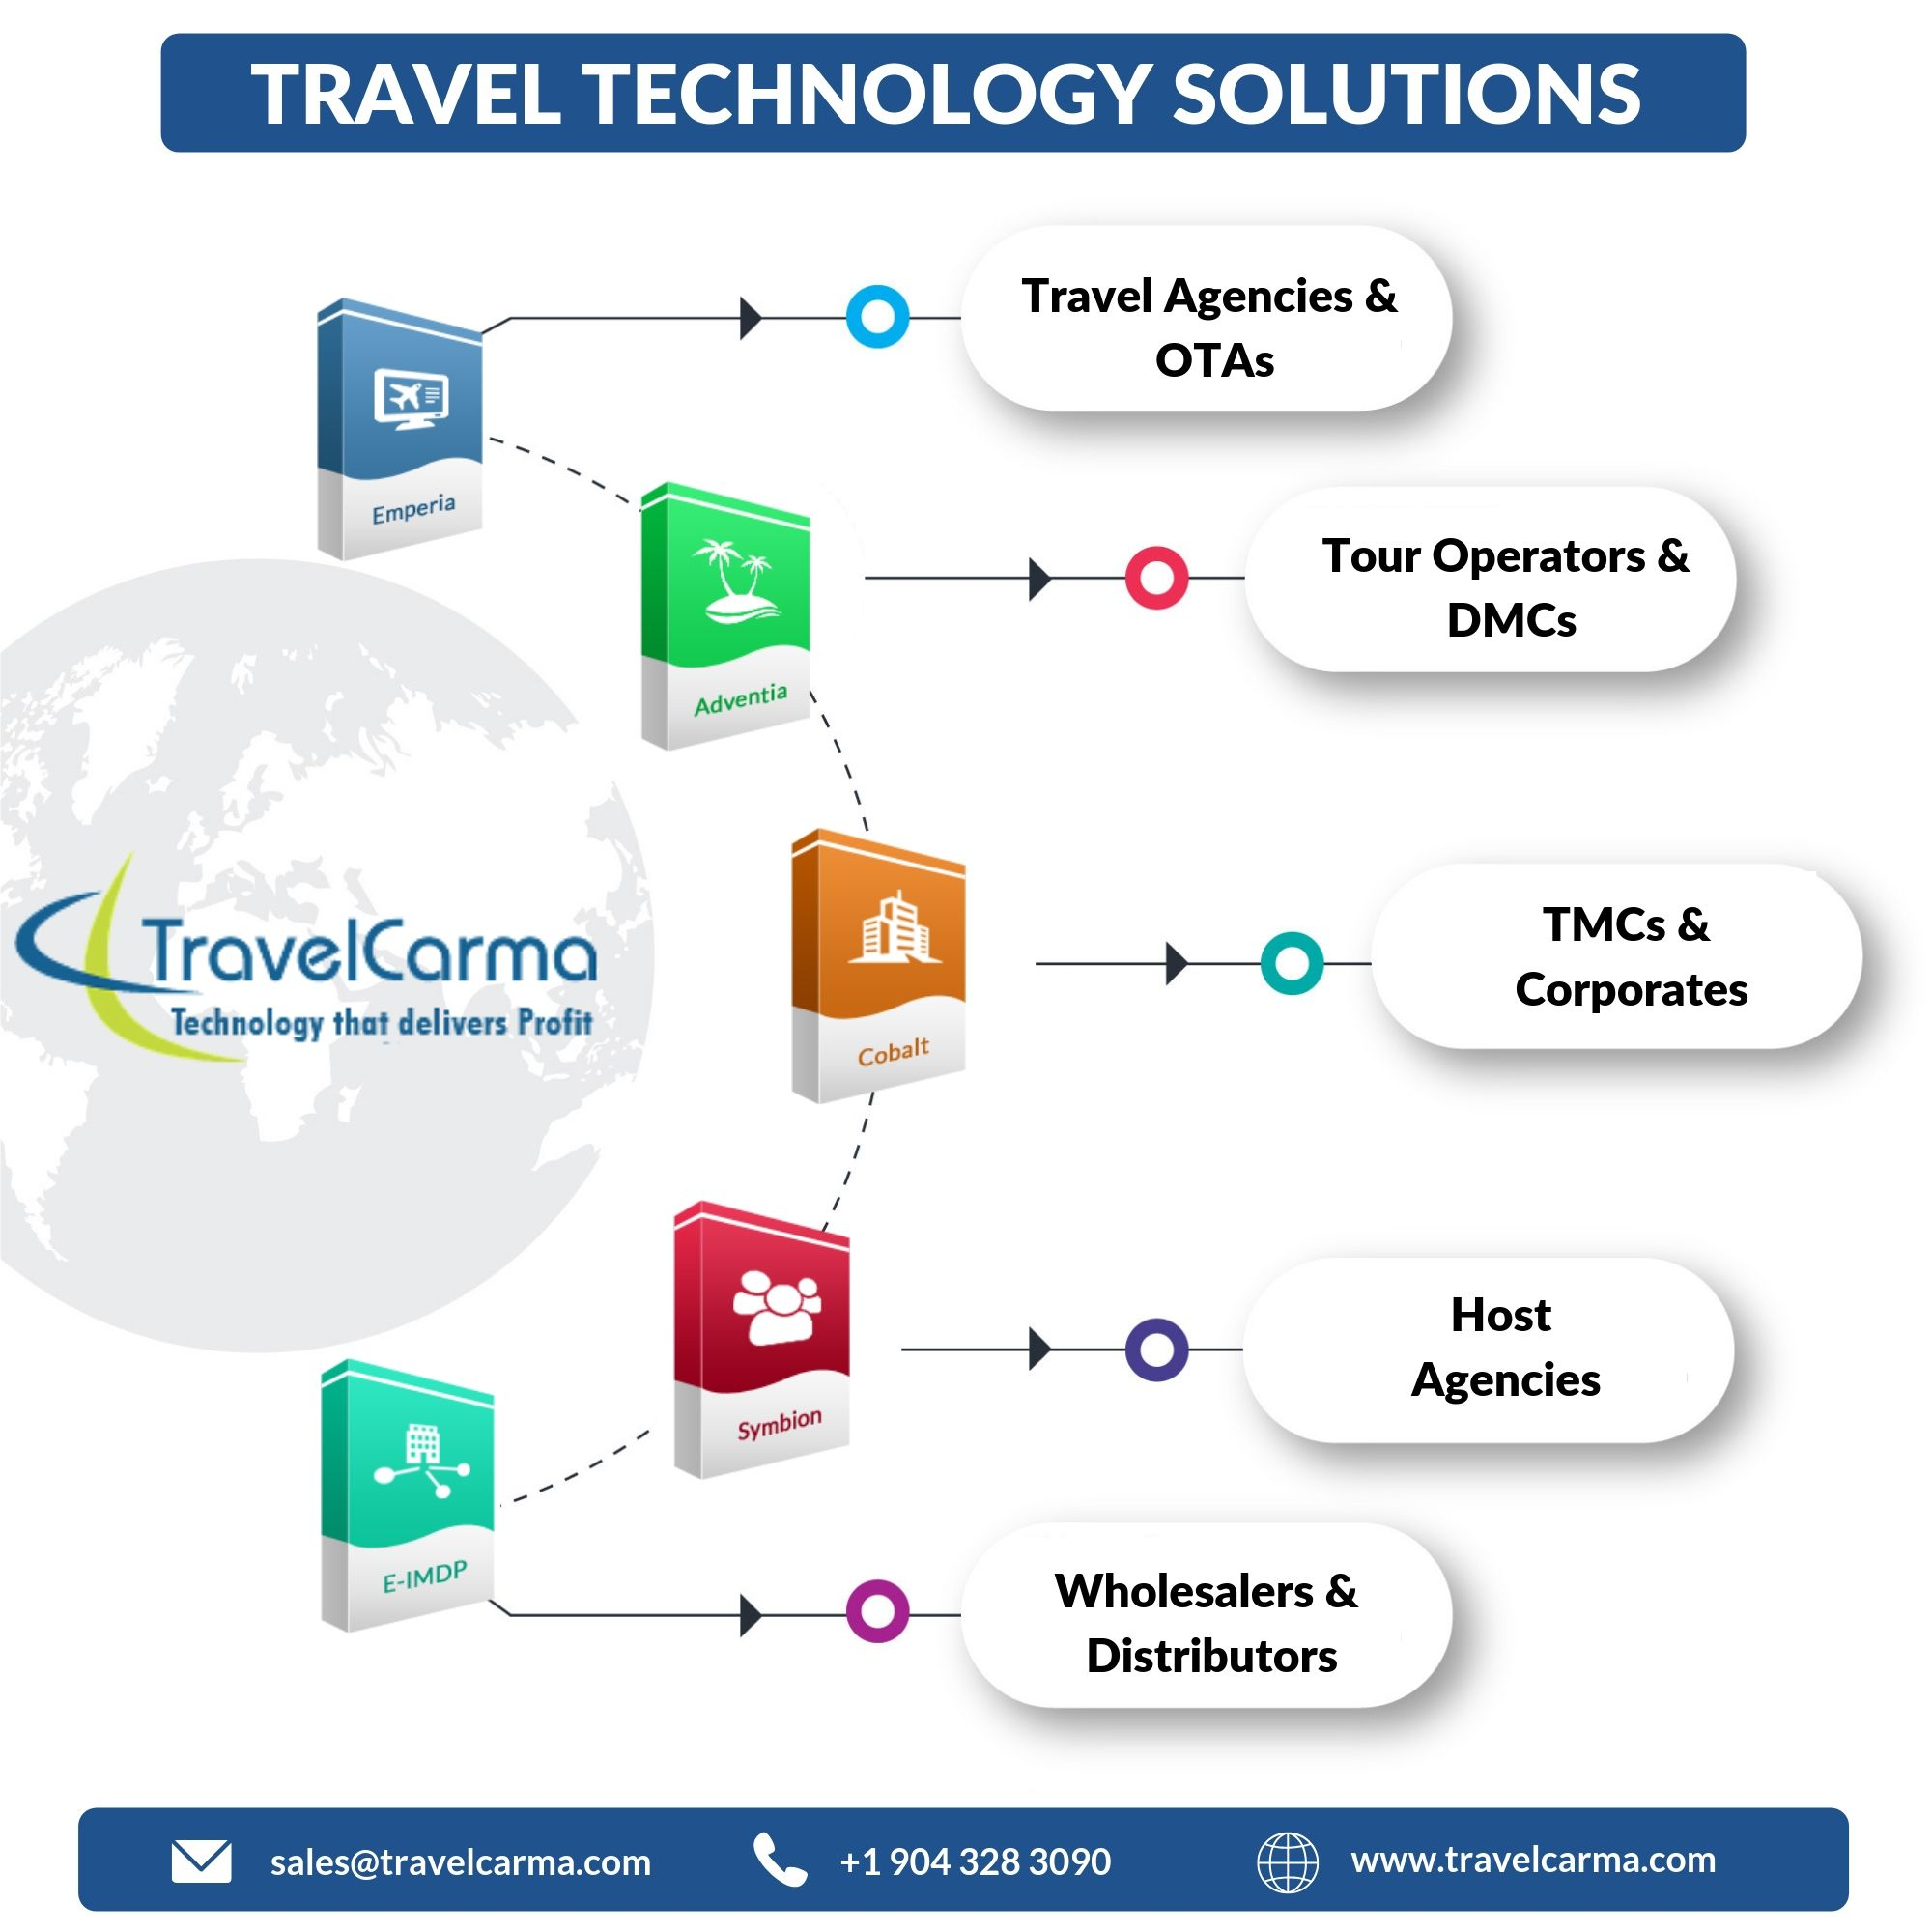 Travel Technology Solutions Travel technology